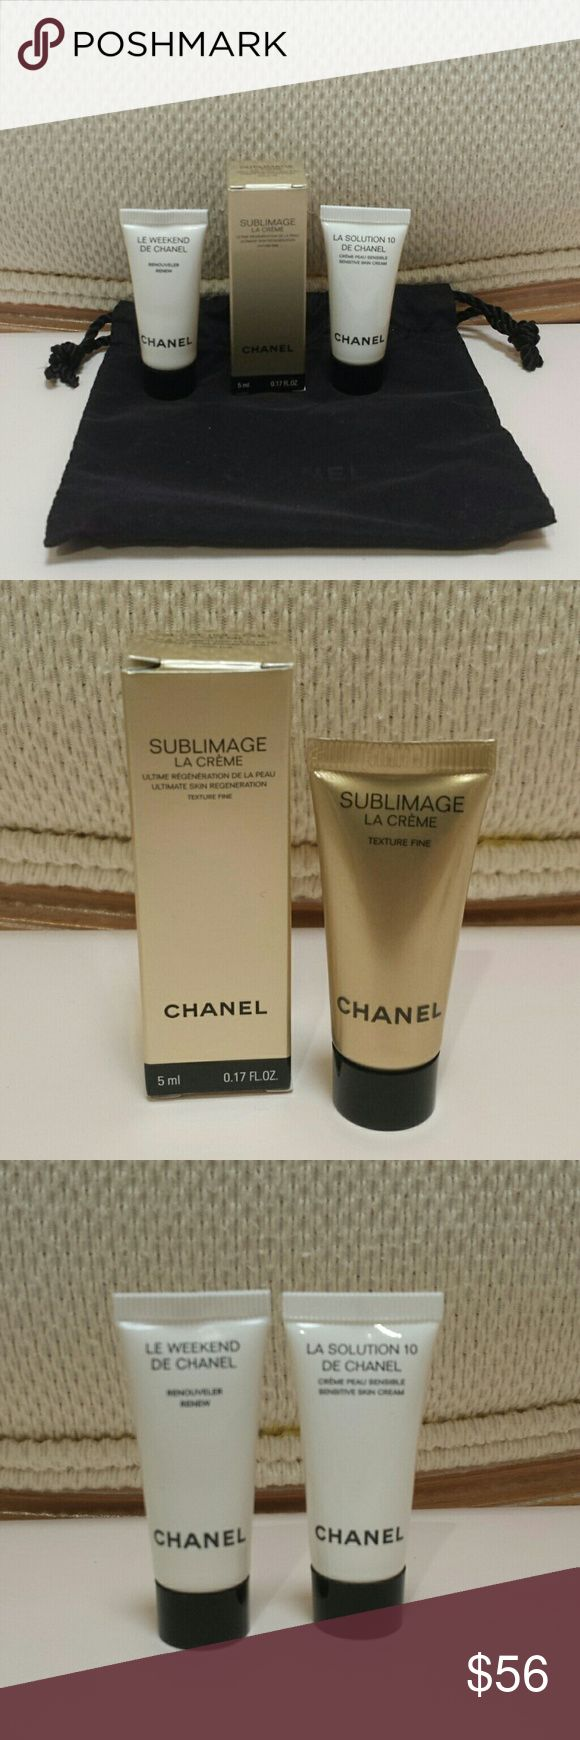 Chanel Skincare Bundle - Sublimage La Creme .17 oz $40 - Le Weekend DE Chanel .17 oz $11.5 - La Solution 10 DE Chanel .17 oz $13.9 - Dust Bag  All items are new and never tested.  No trades.  Please submit any offers through the offer option. CHANEL Makeup